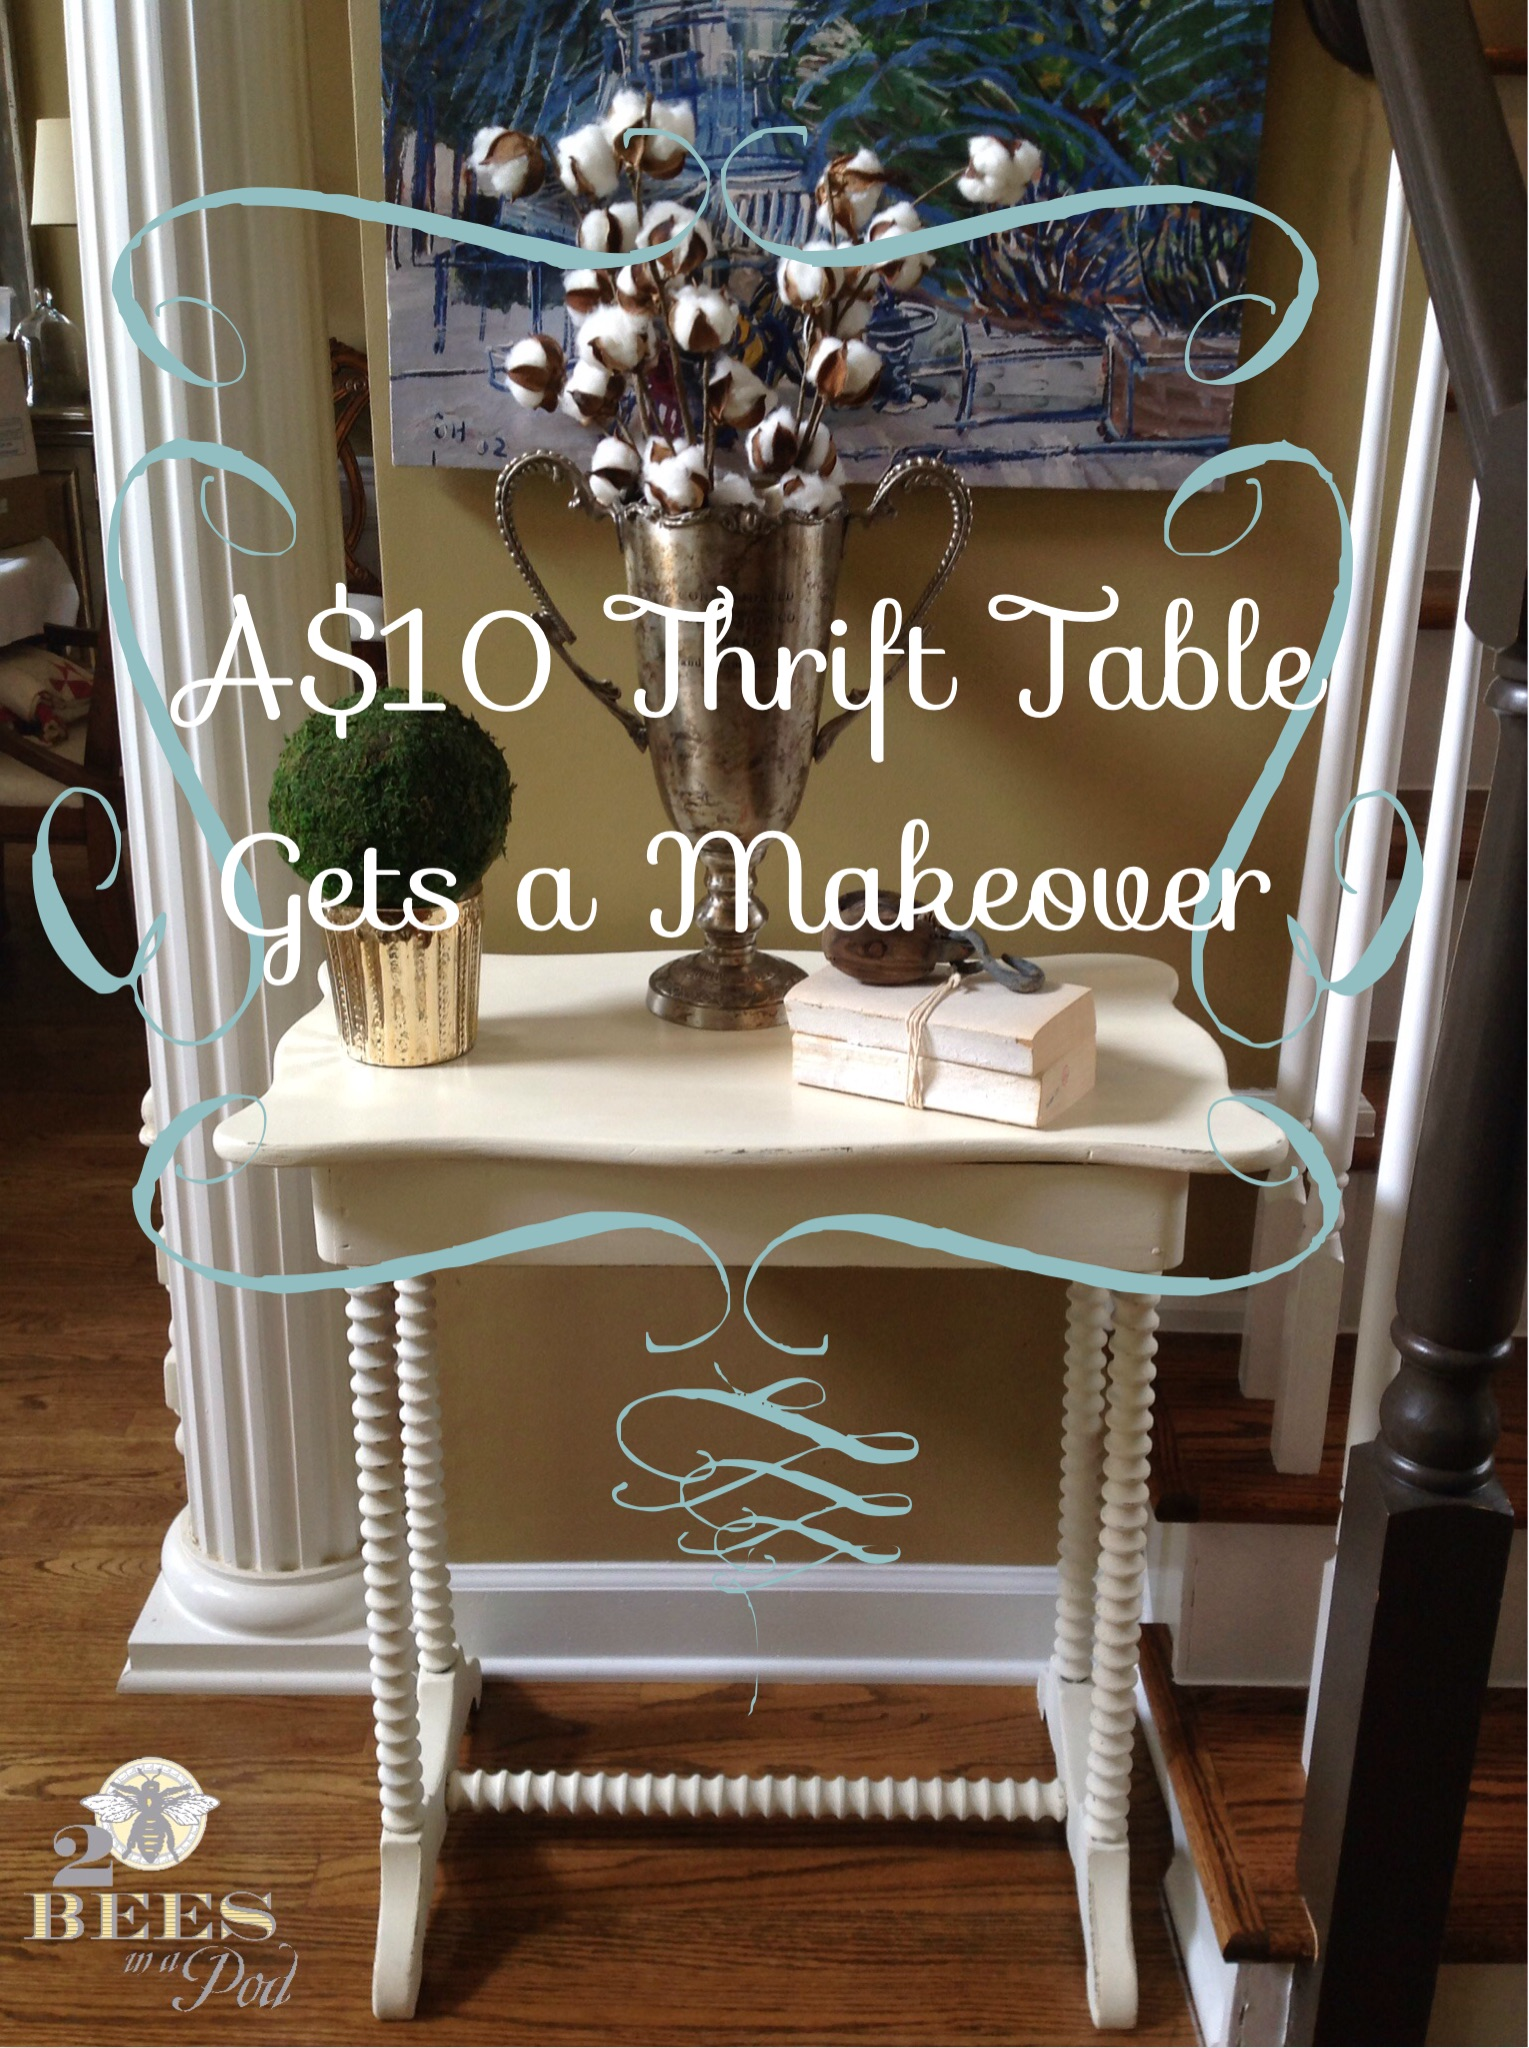 A $10 Thrifted Table Gets a Makeover - with homemade chalk paint, distressing and a coat of wax